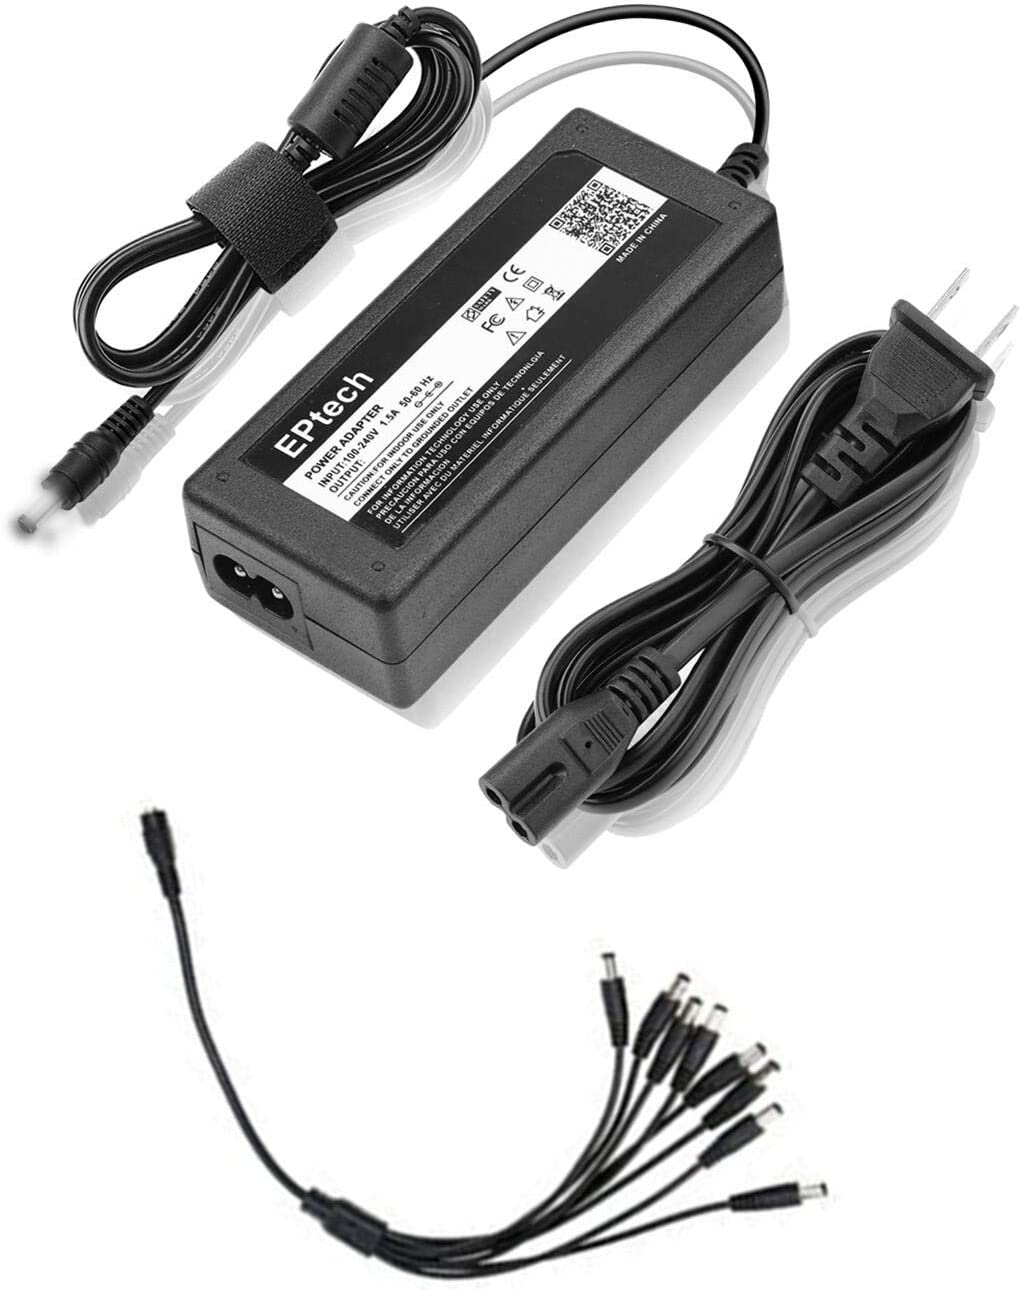 Ac Adapter for 12v CCTV Surveillance Security System Camera 4-Way to 8-Way Splitter 4CH for Camera Only ANNKE,Zmodo, JOOAN, Anran 8CH Channel HDMI Digital Video Recorder Audio DVR